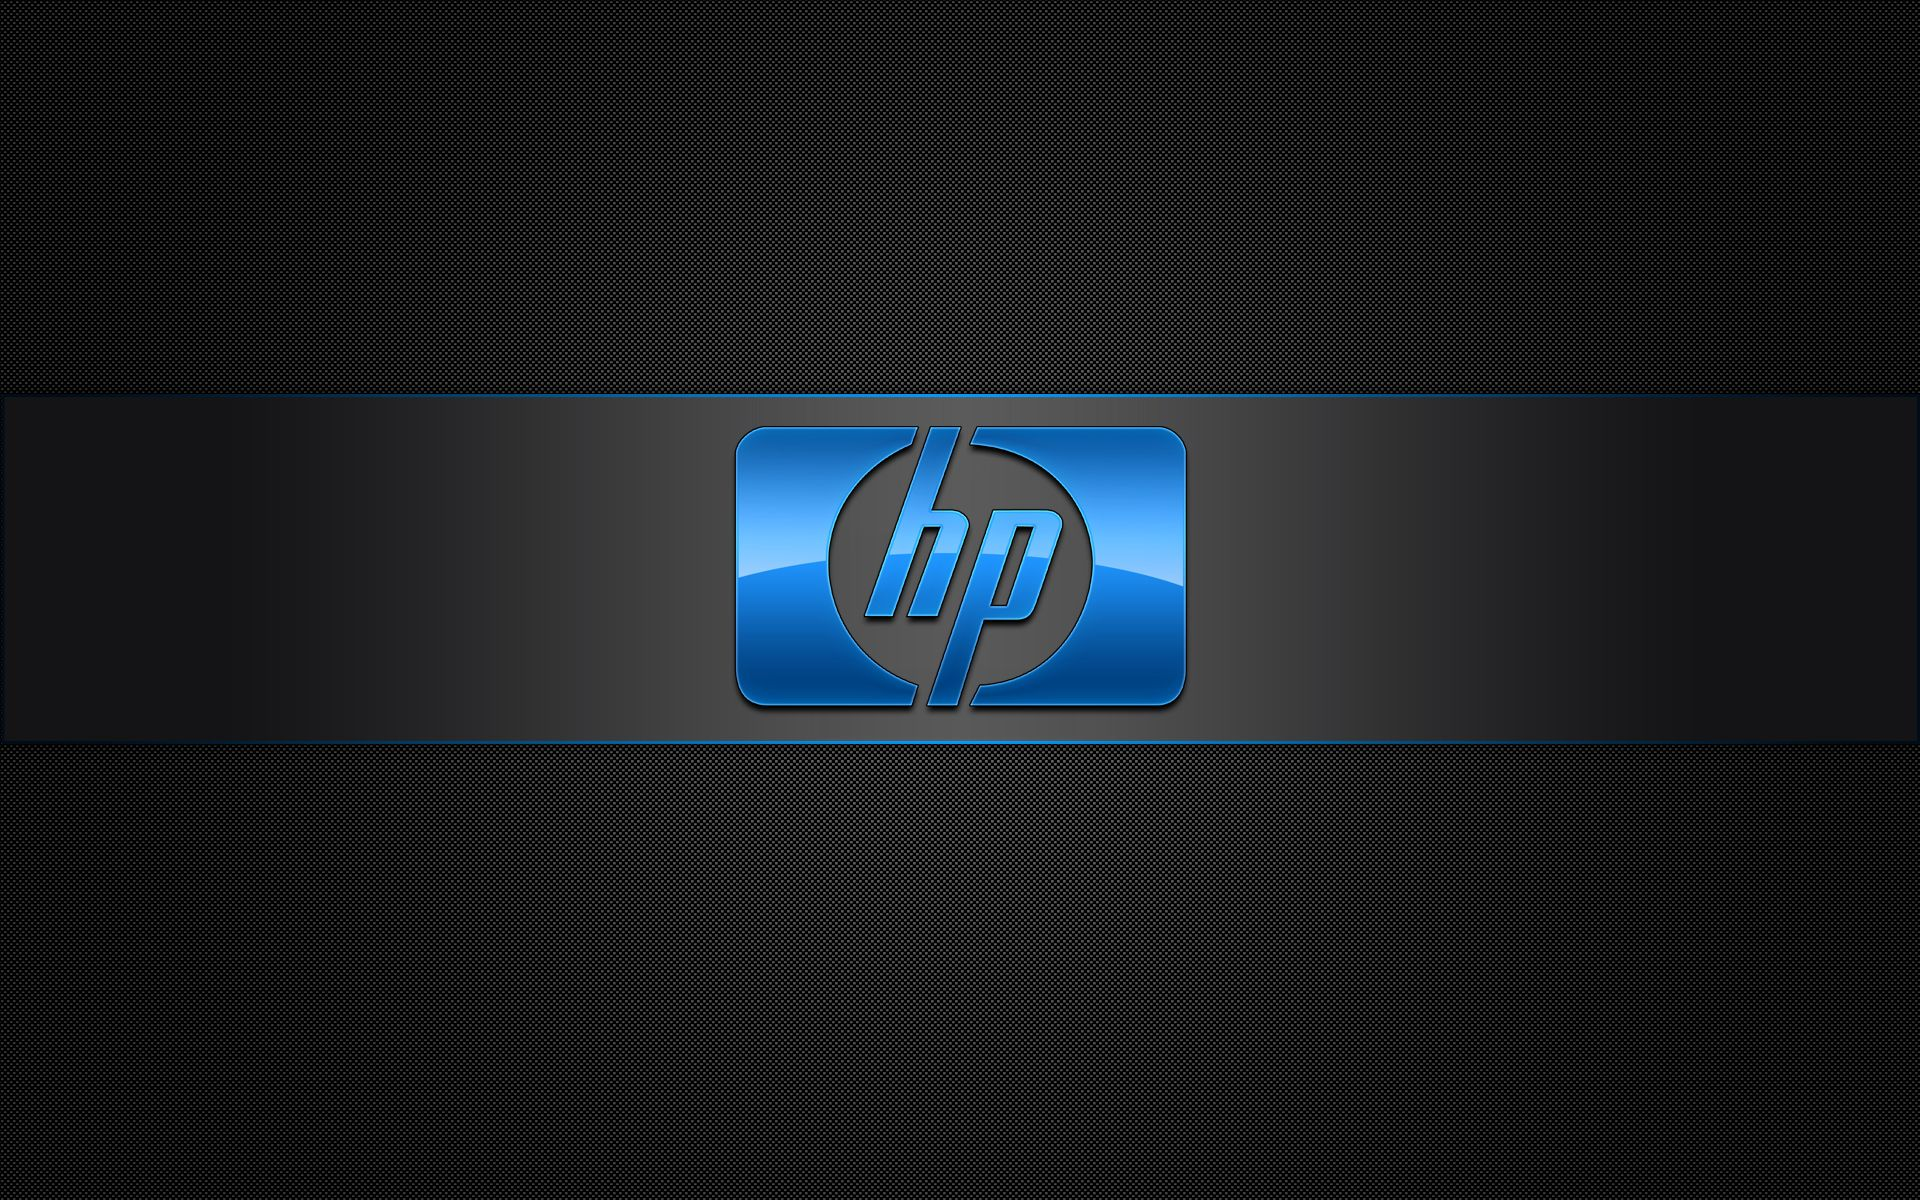 Hp Wallpaper Hp Logo Background Hd Wallpaper Hd Wallpaper